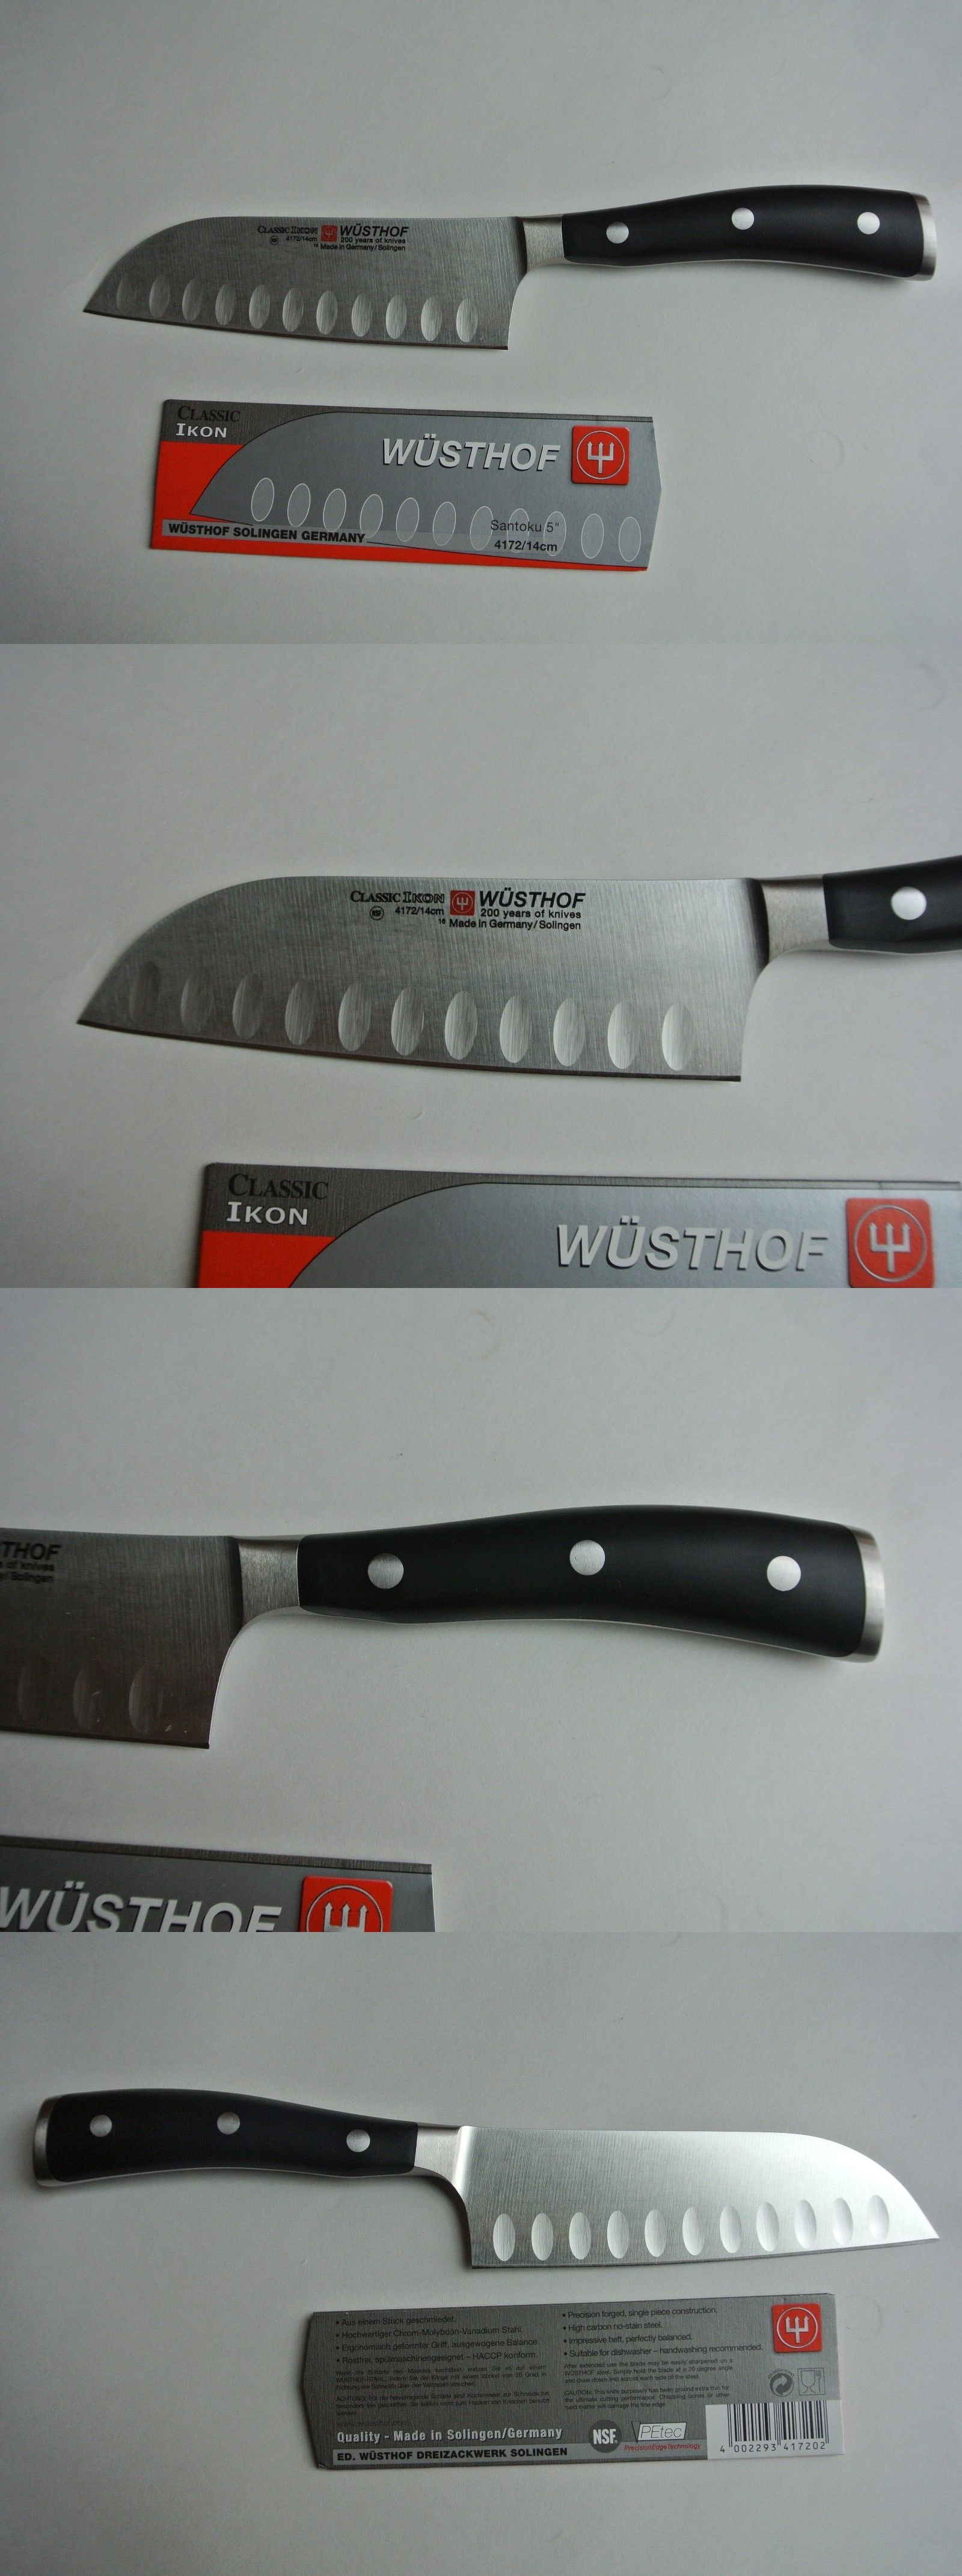 kitchen and steak knives new wusthof classic ikon 5 nsf petec santoku knife model